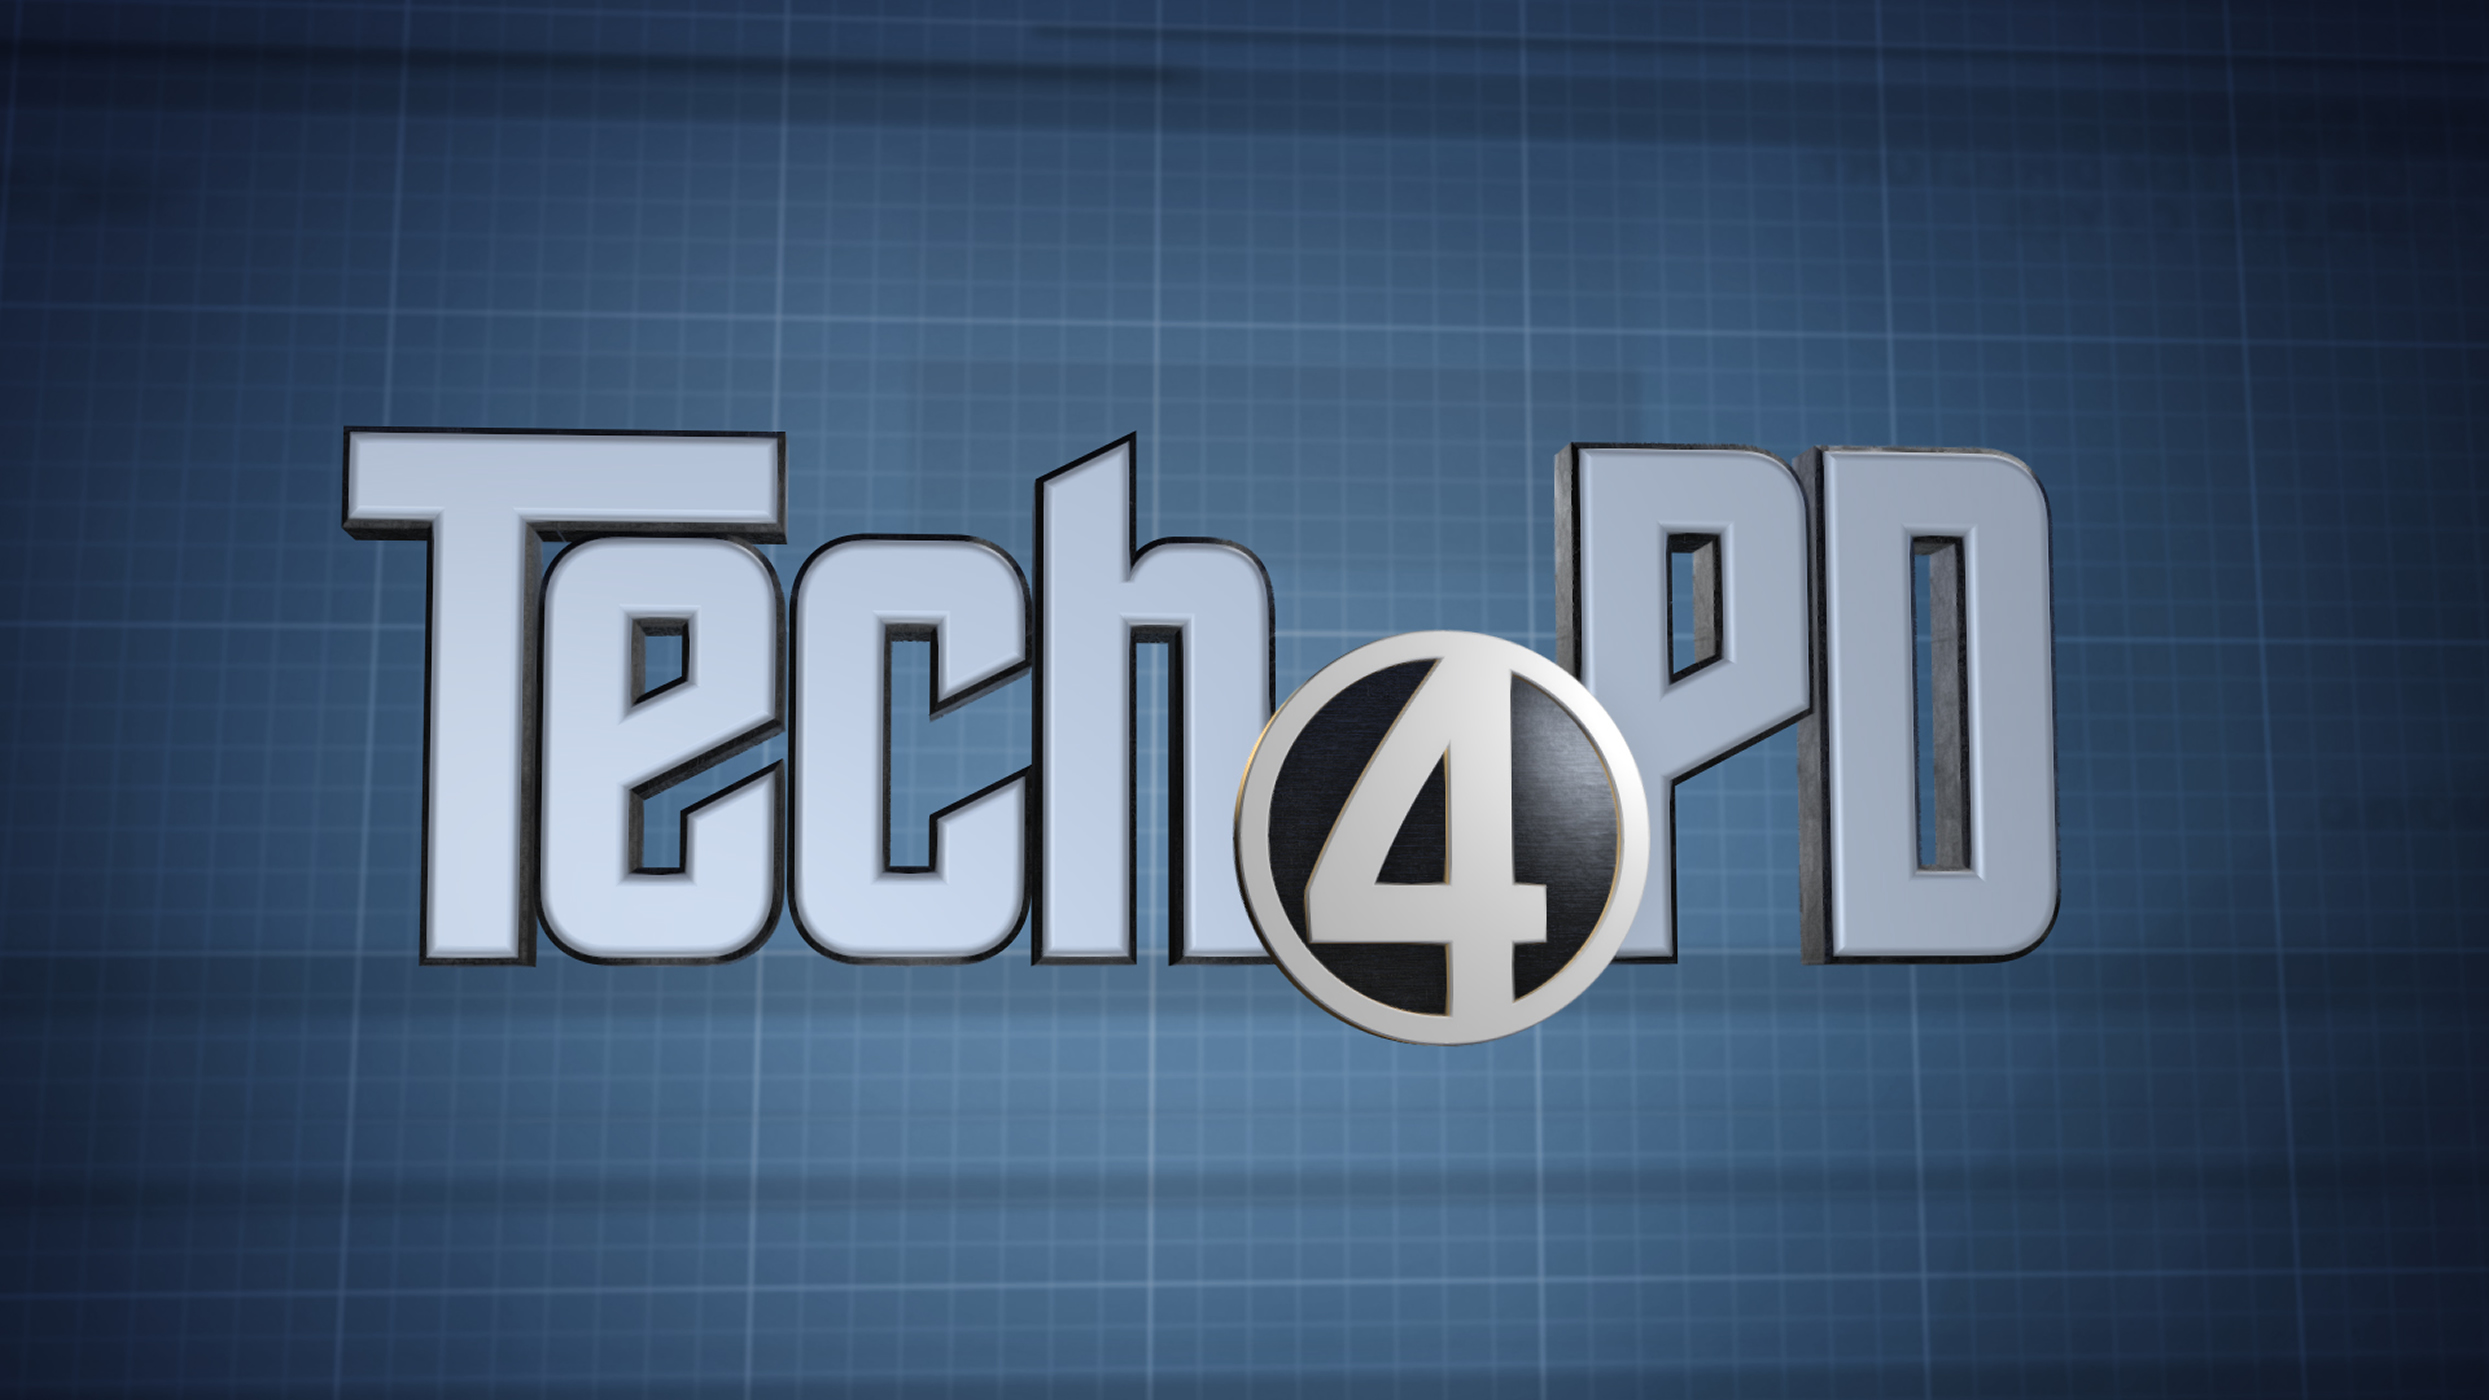 Tech4PD - ENGINEERING.com